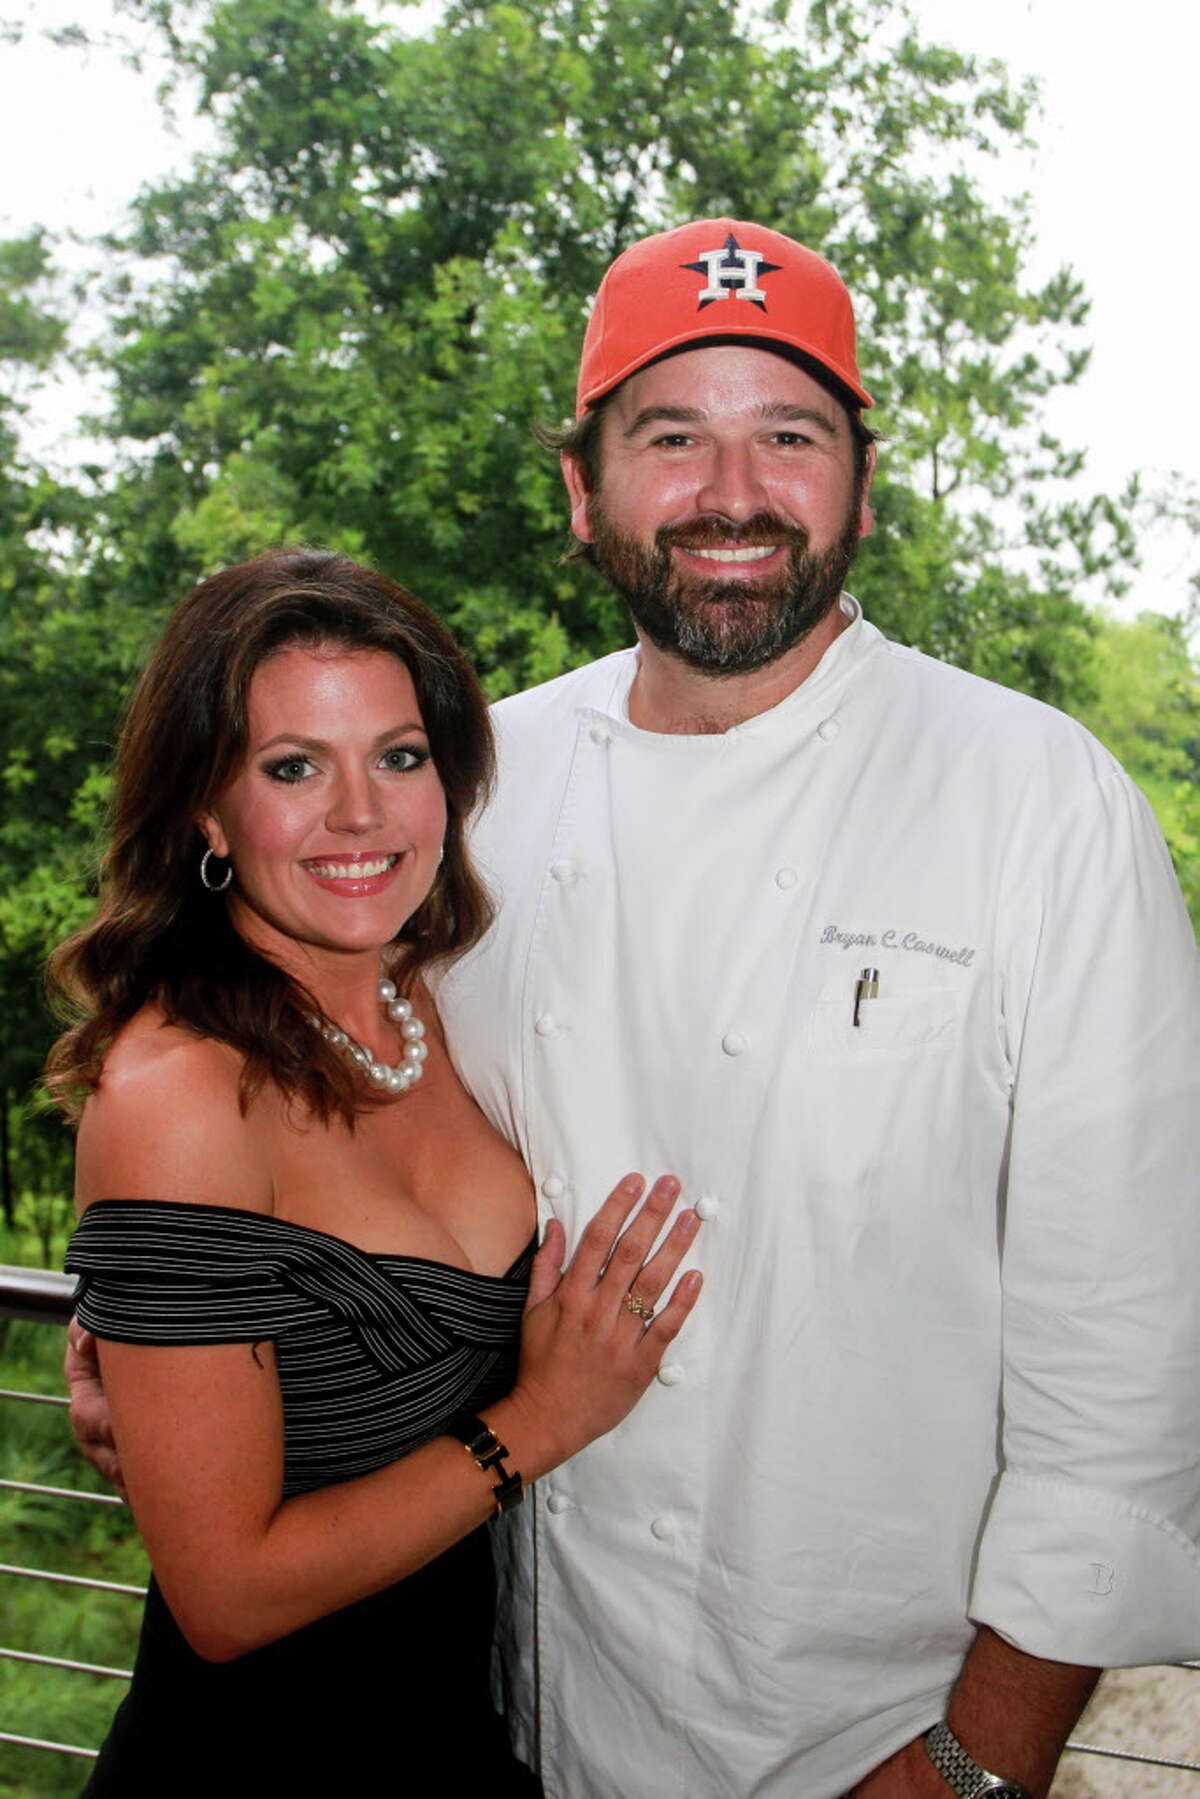 Jennifer and chef Bryan Caswell at the Delicious Alchemy dinner. The Caswells have created the Southern Salt Foundation dedicated to Gulf Coast education and conservation.